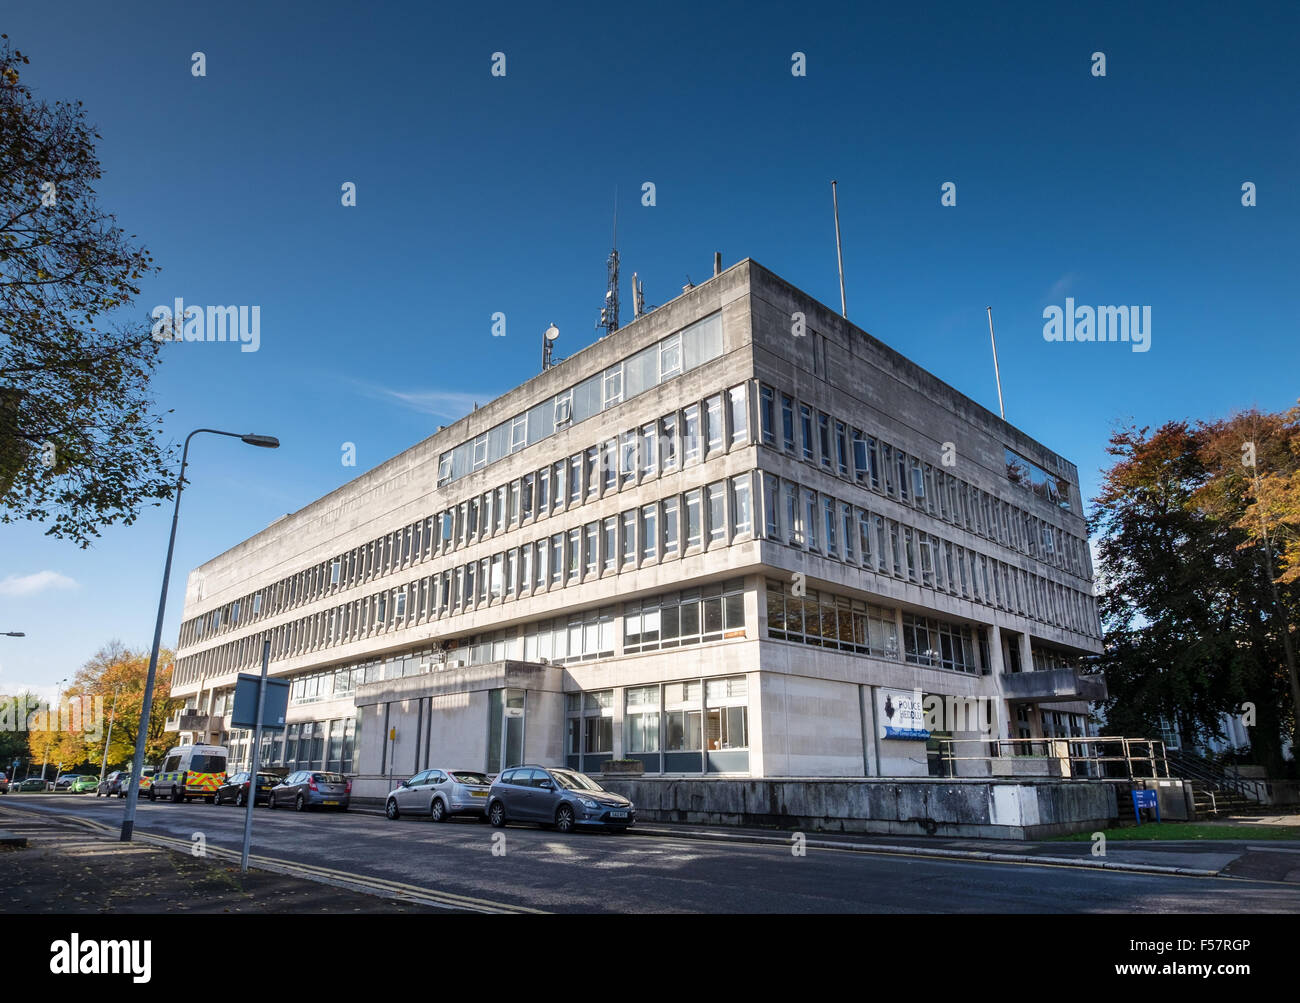 Cardiff Central Police Station exterior, Cardiff, South Wales, UK - Stock Image